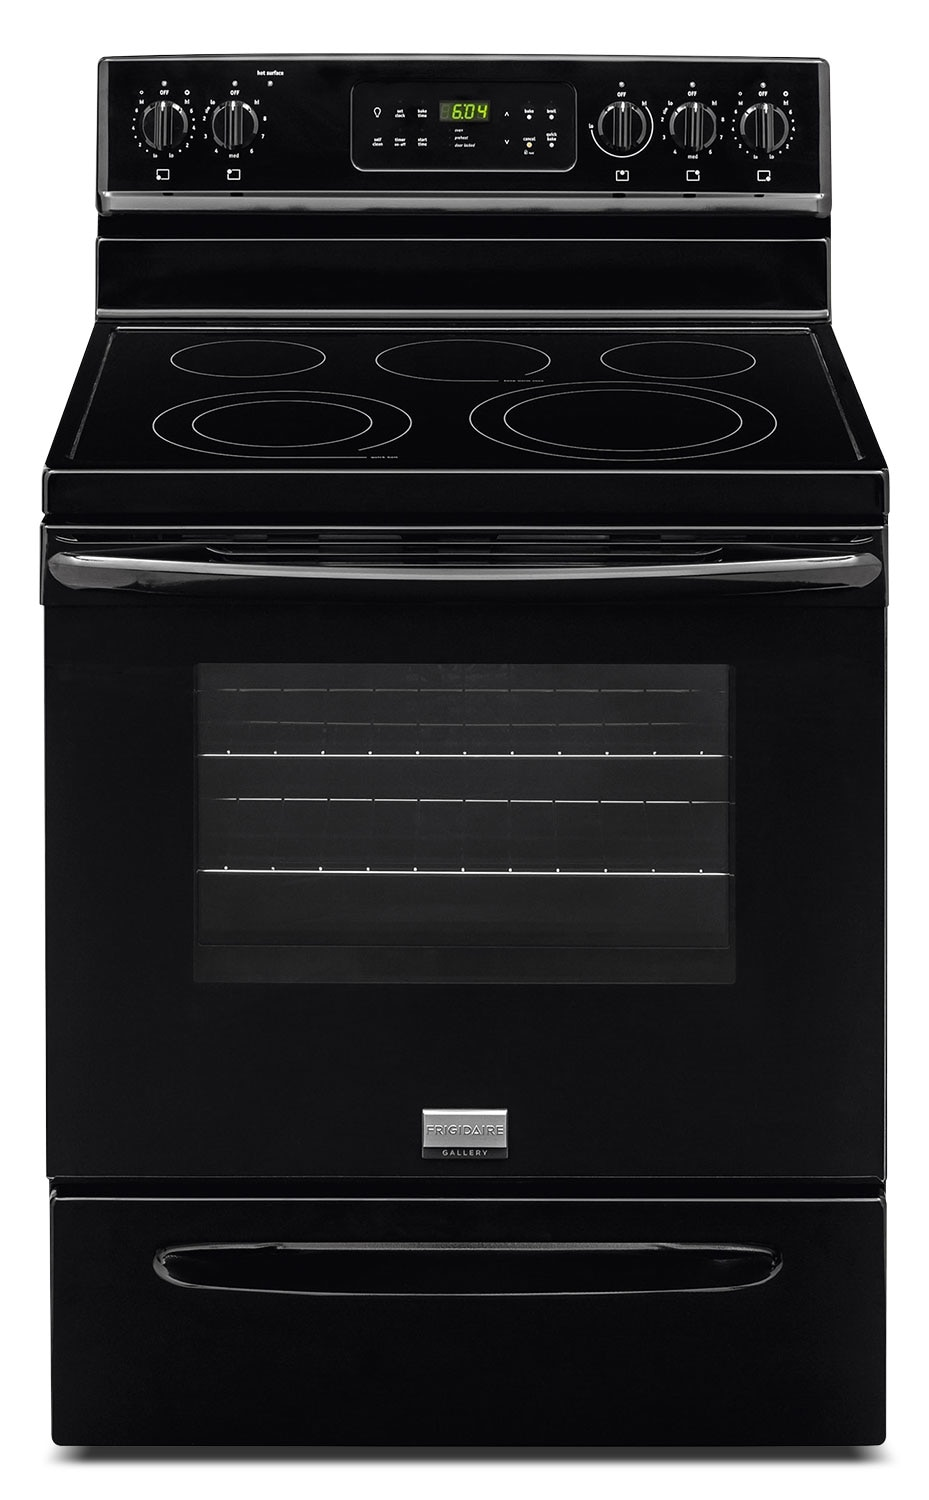 Cooking Products - Frigidaire Gallery Black Freestanding Electric Convection Range (5.7 Cu. Ft.) - CGEF3035RB